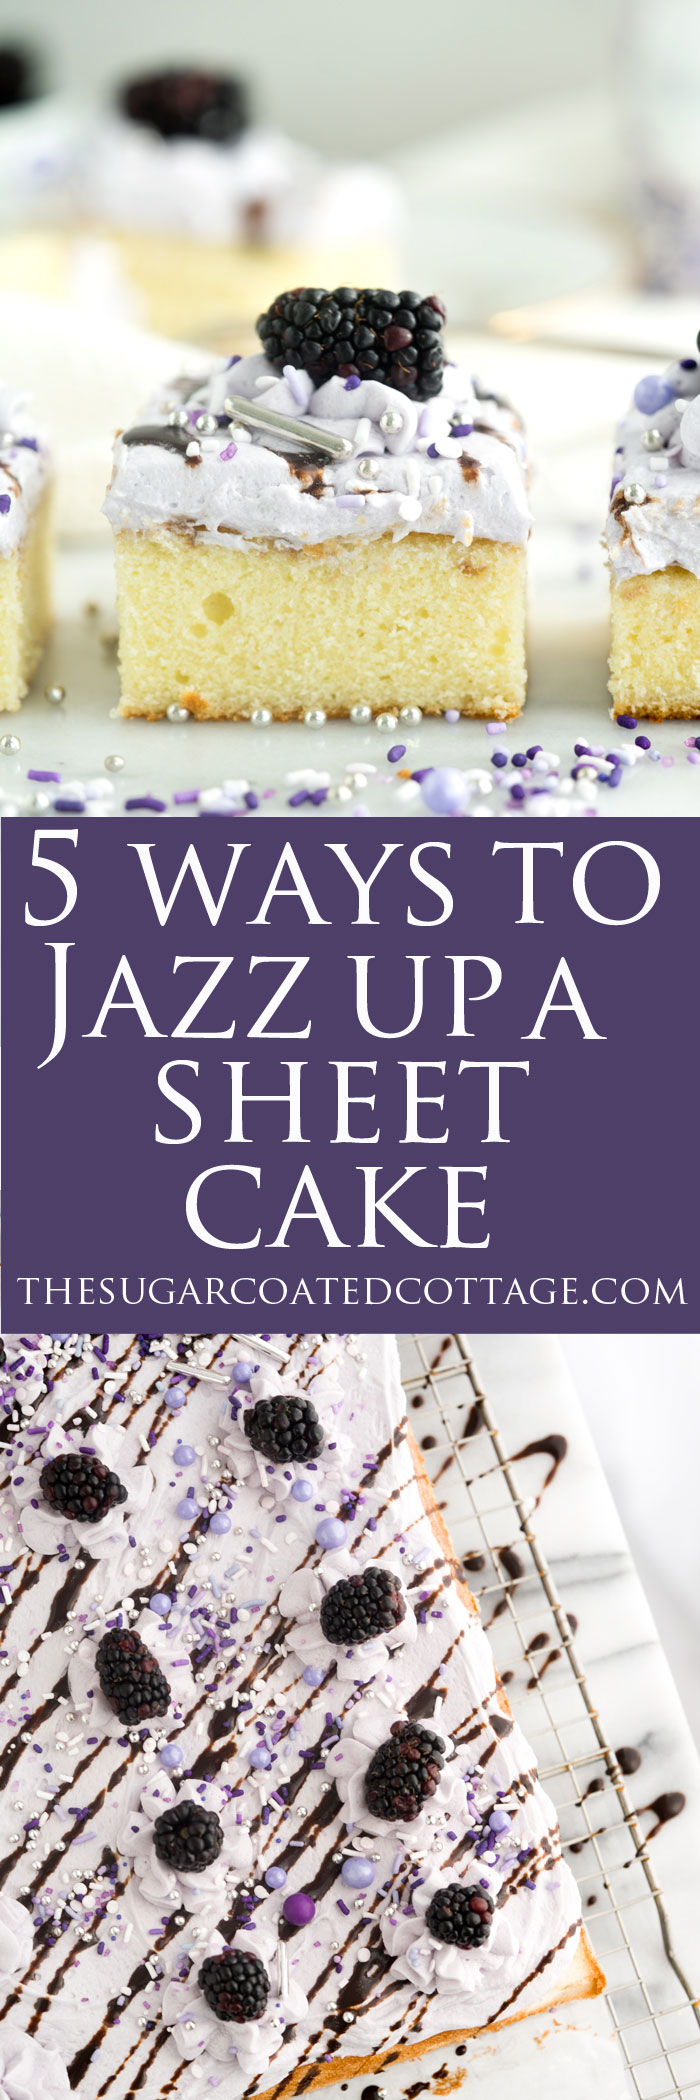 5 Ways To Jazz Up A Sheet Cake. Follow these tips to take your sheet cake from boring to fancy! | thesugarcoatedcottage - #cake #party #sheetcake